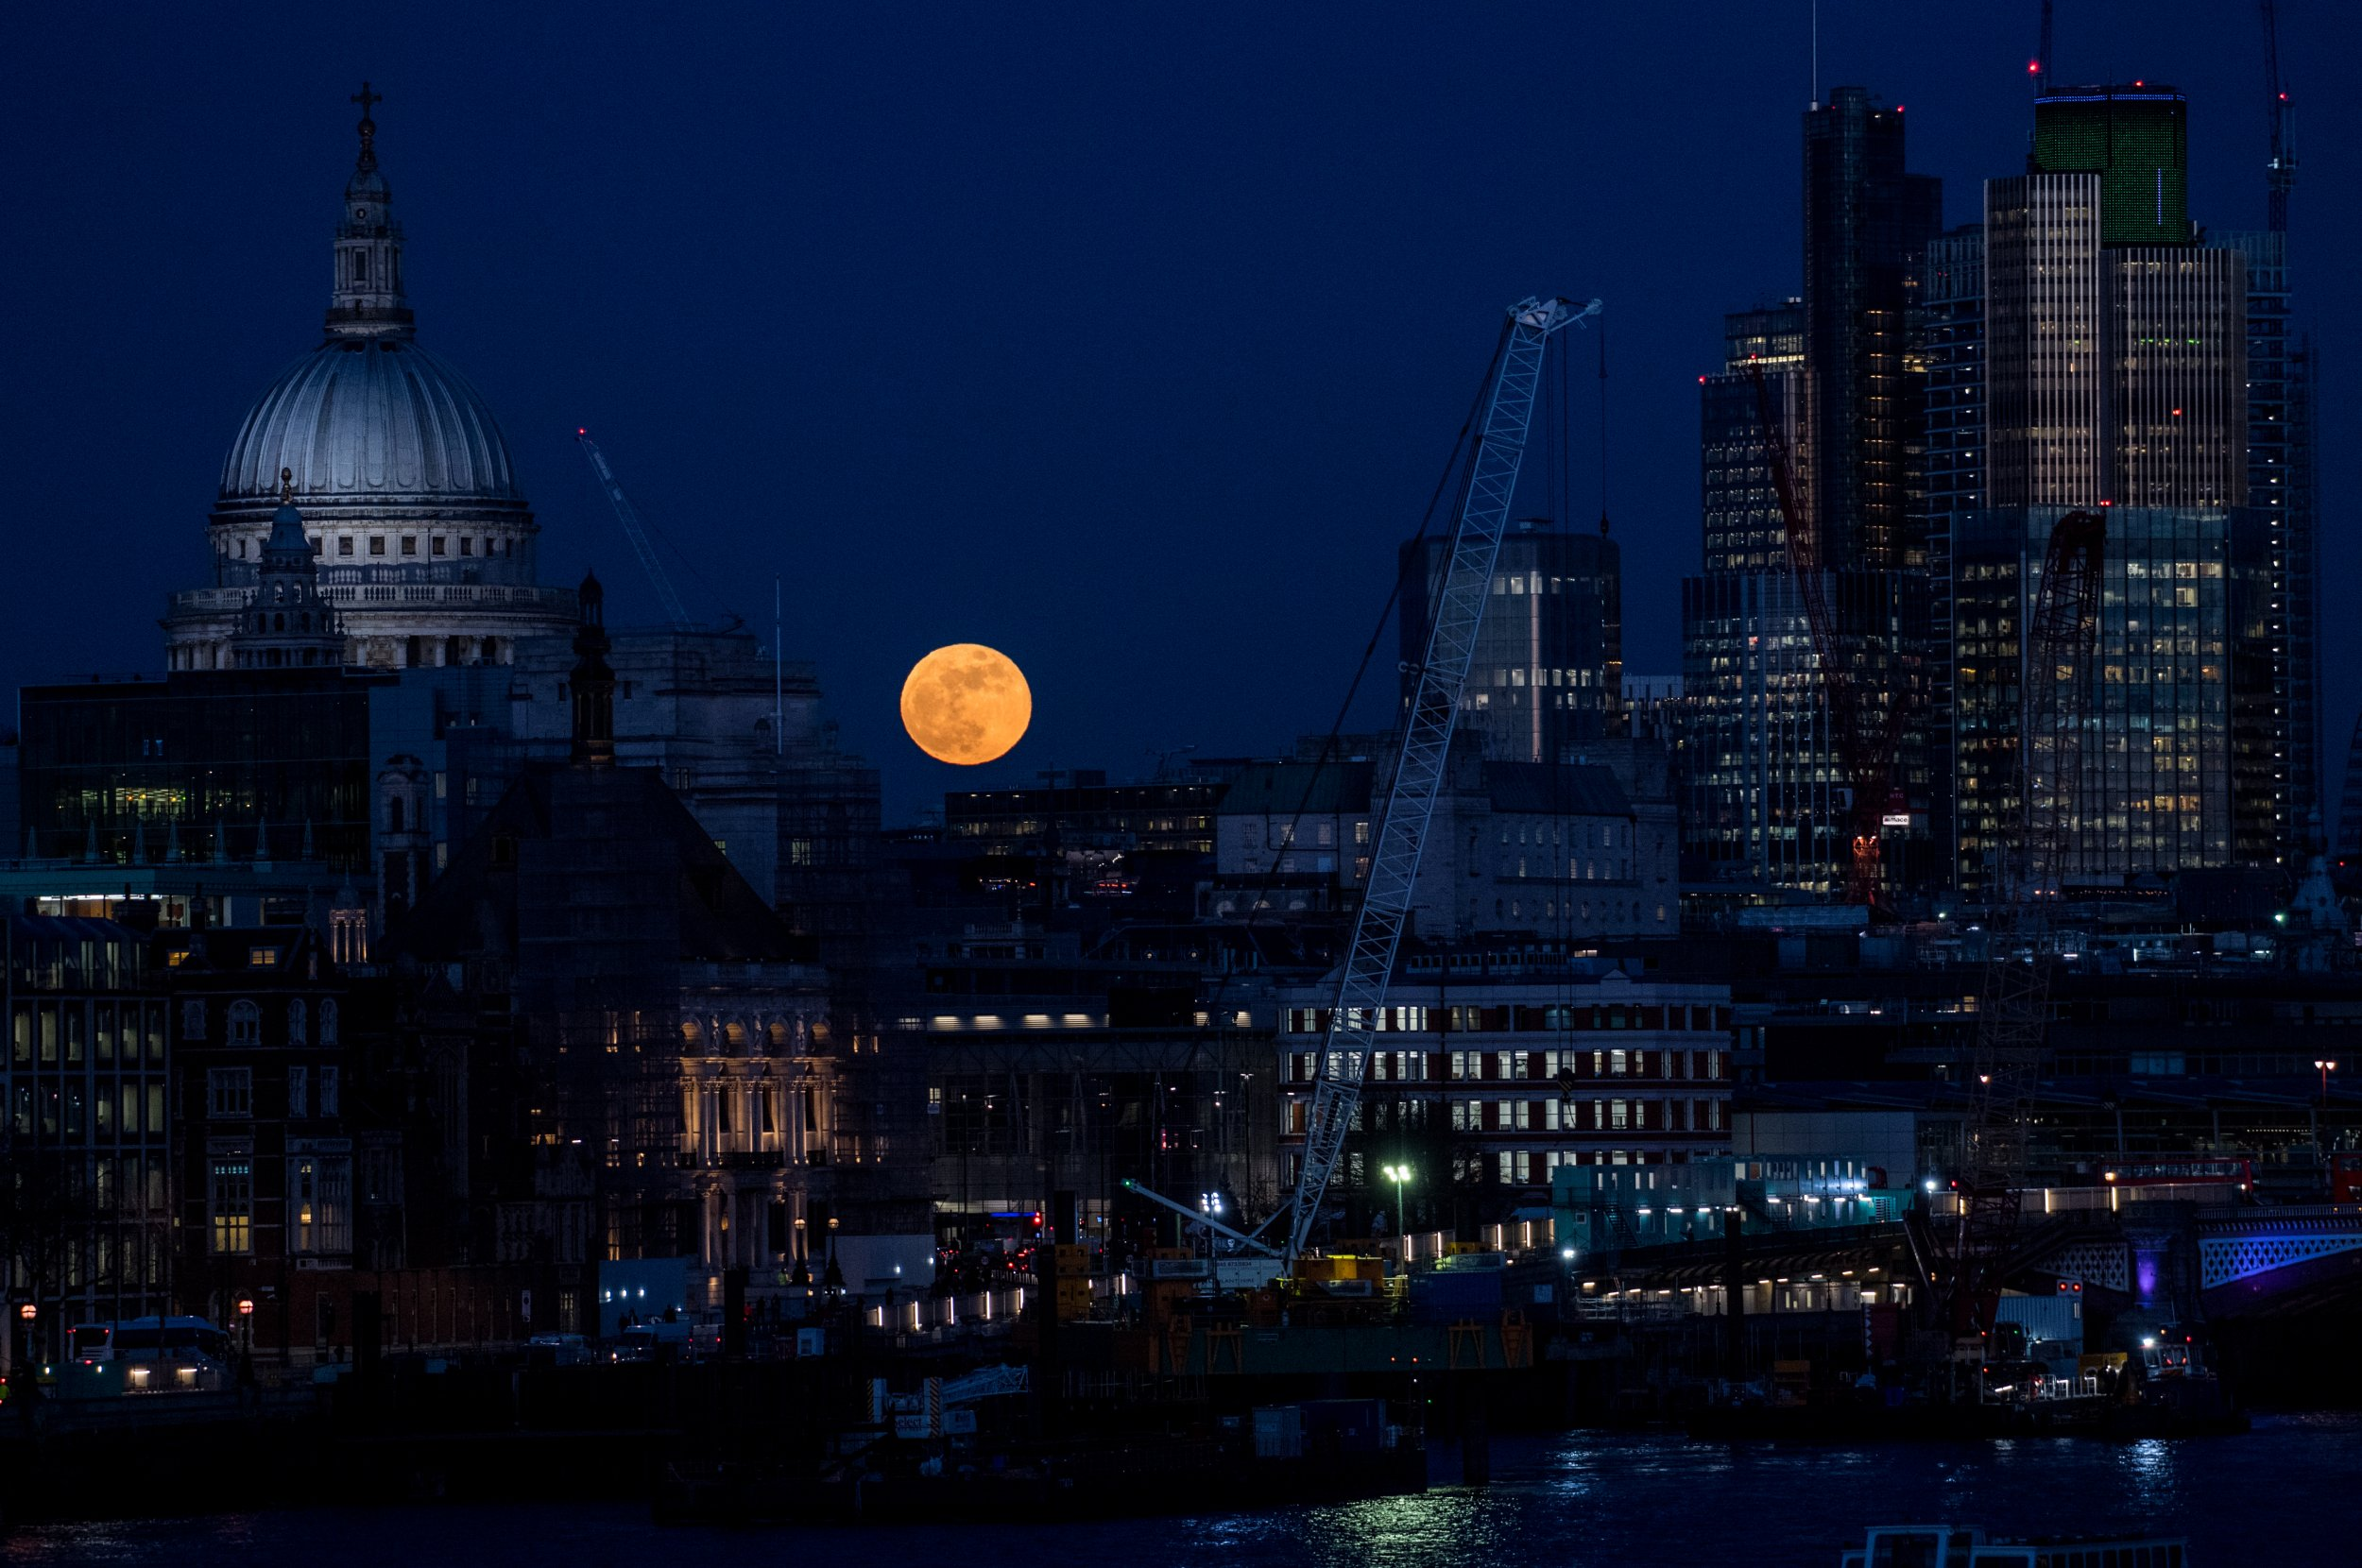 supermoon photo over london